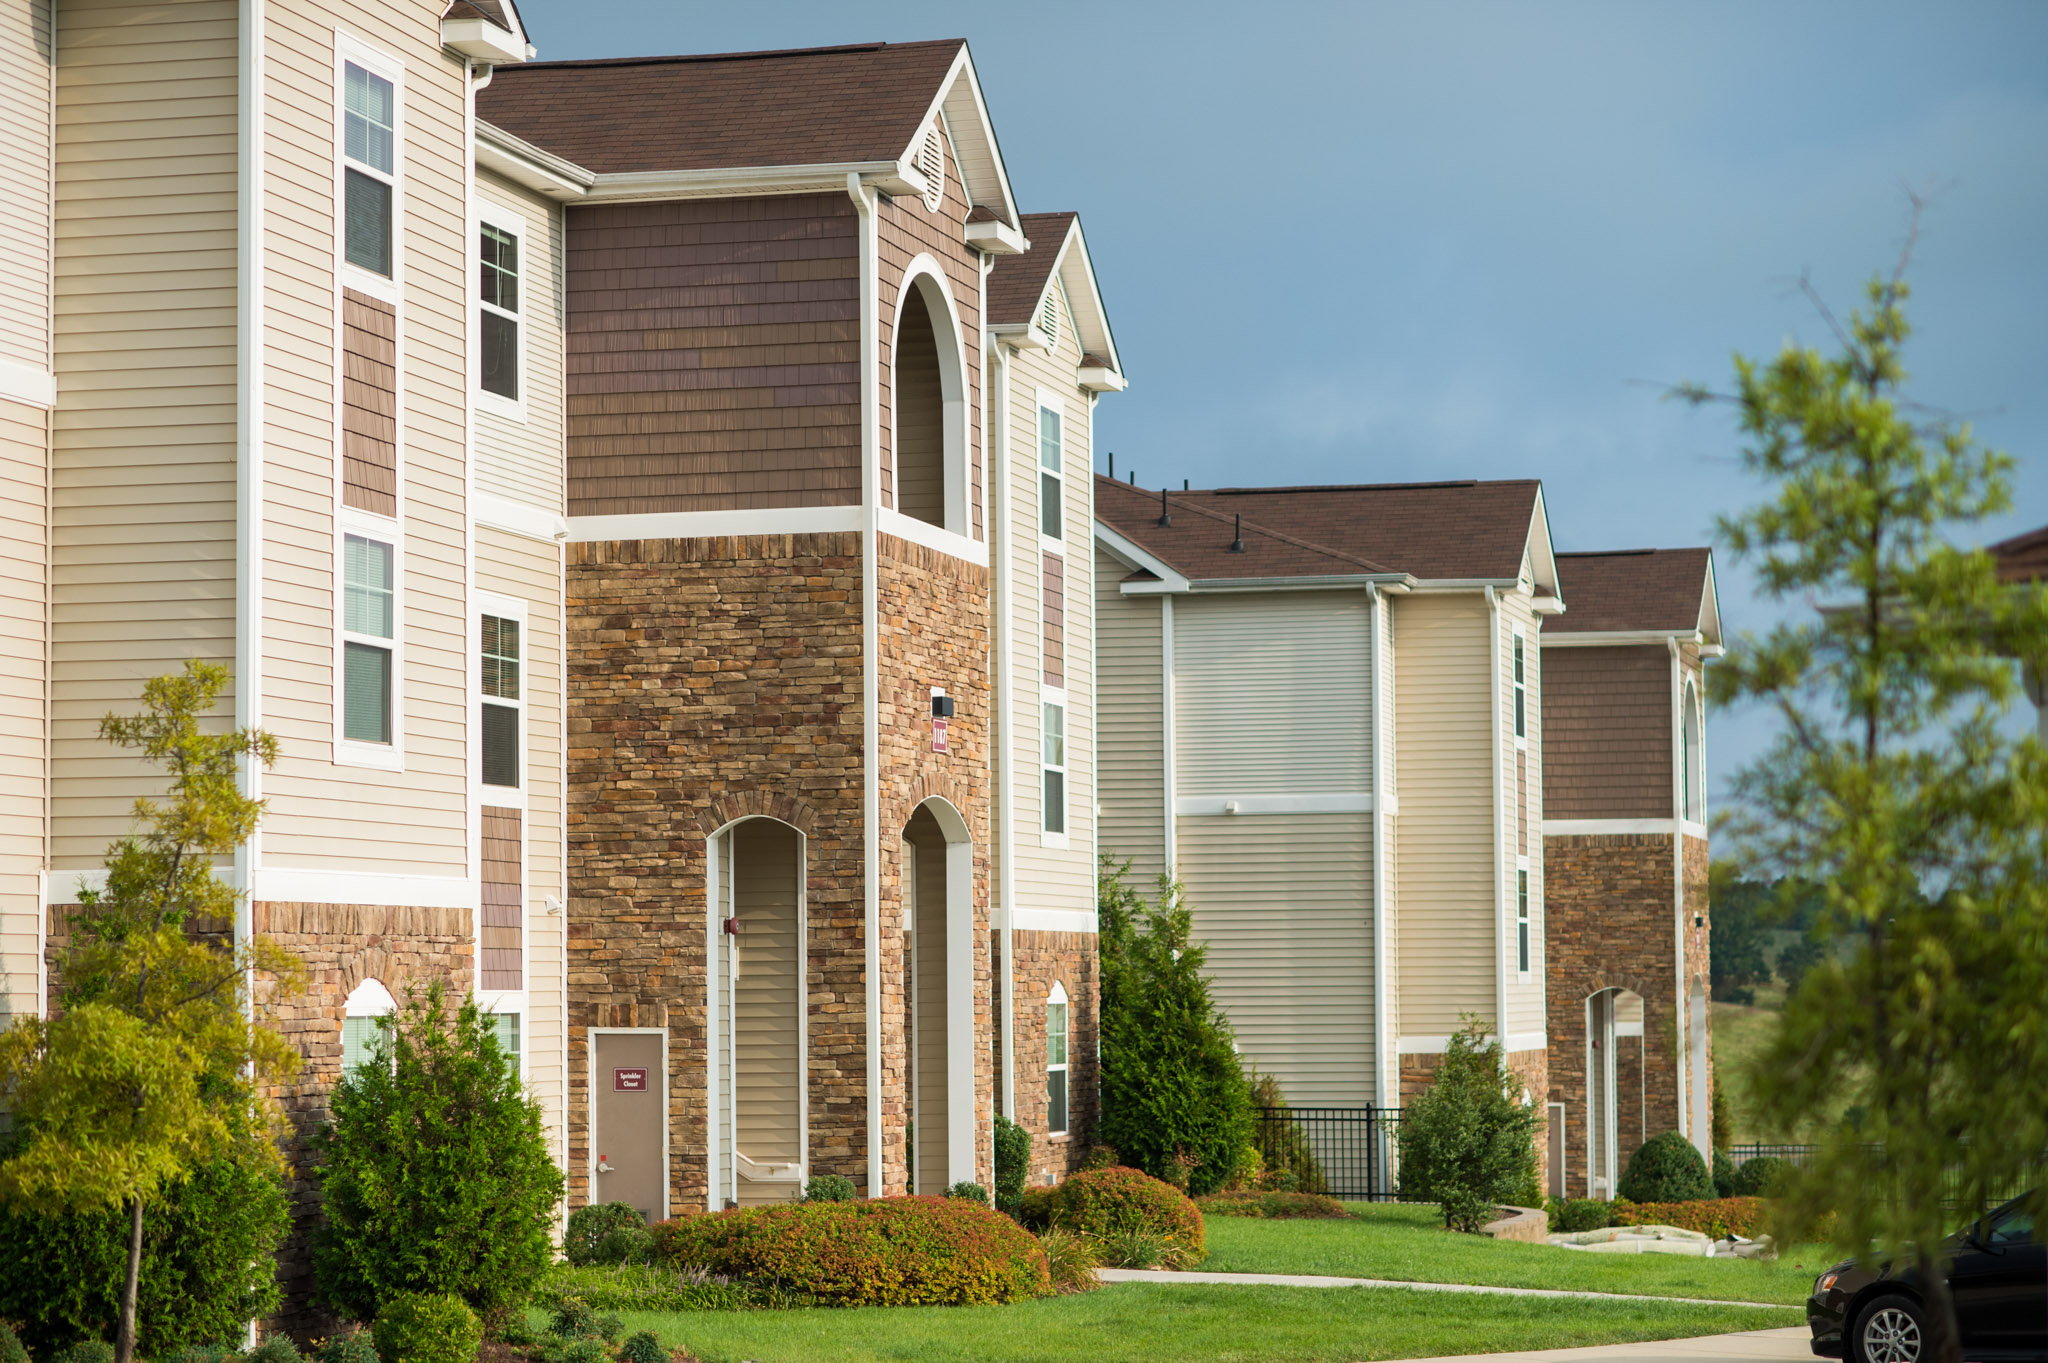 North 38 Exteriors for Web-1064.jpg